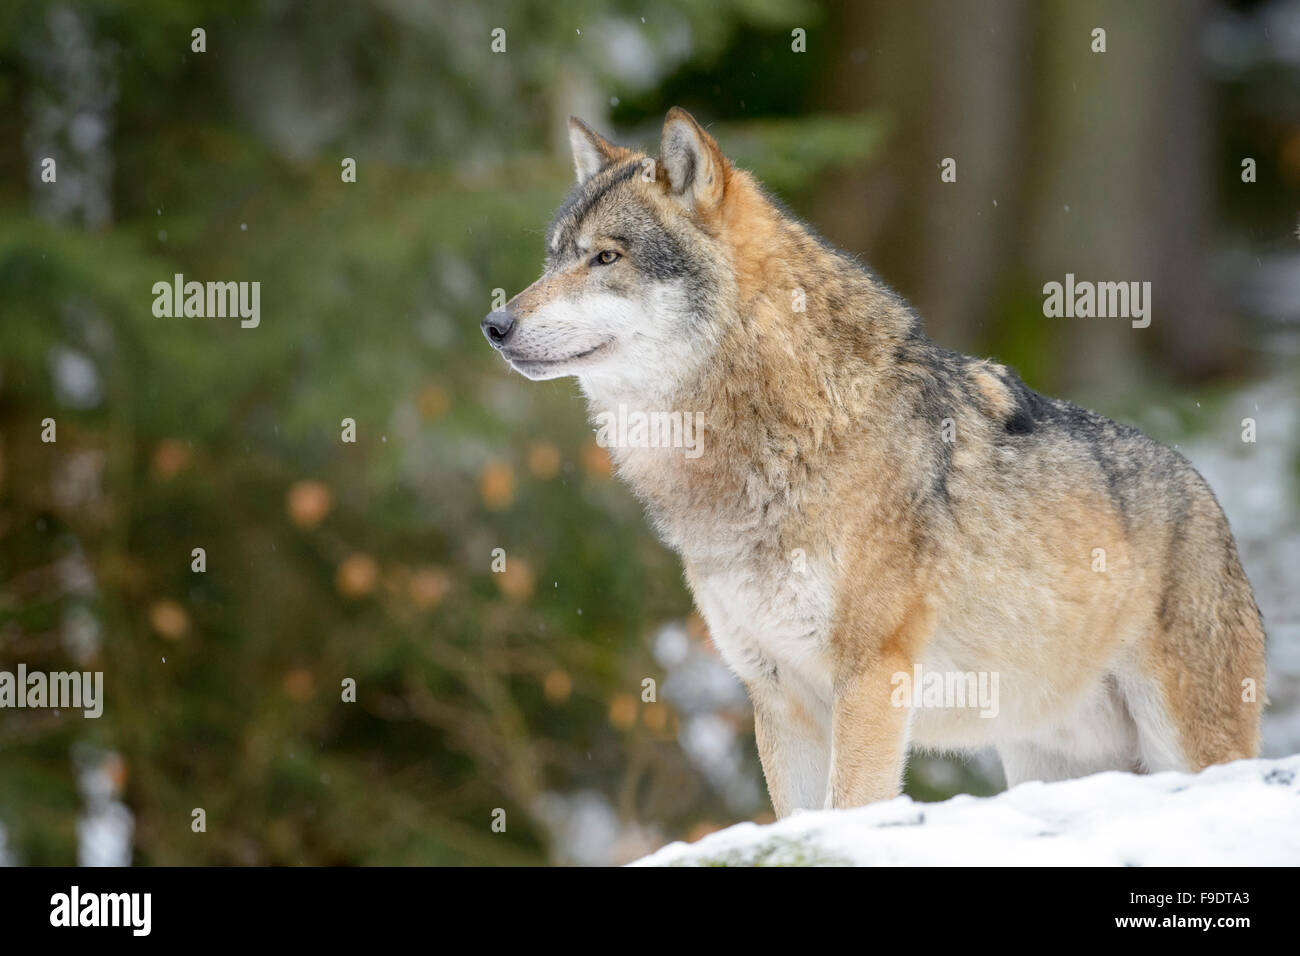 Adult Eurasian wolf (Canis lupus lupus) looking up and standing in the snow, Bayerische wald, Germany - Stock Image